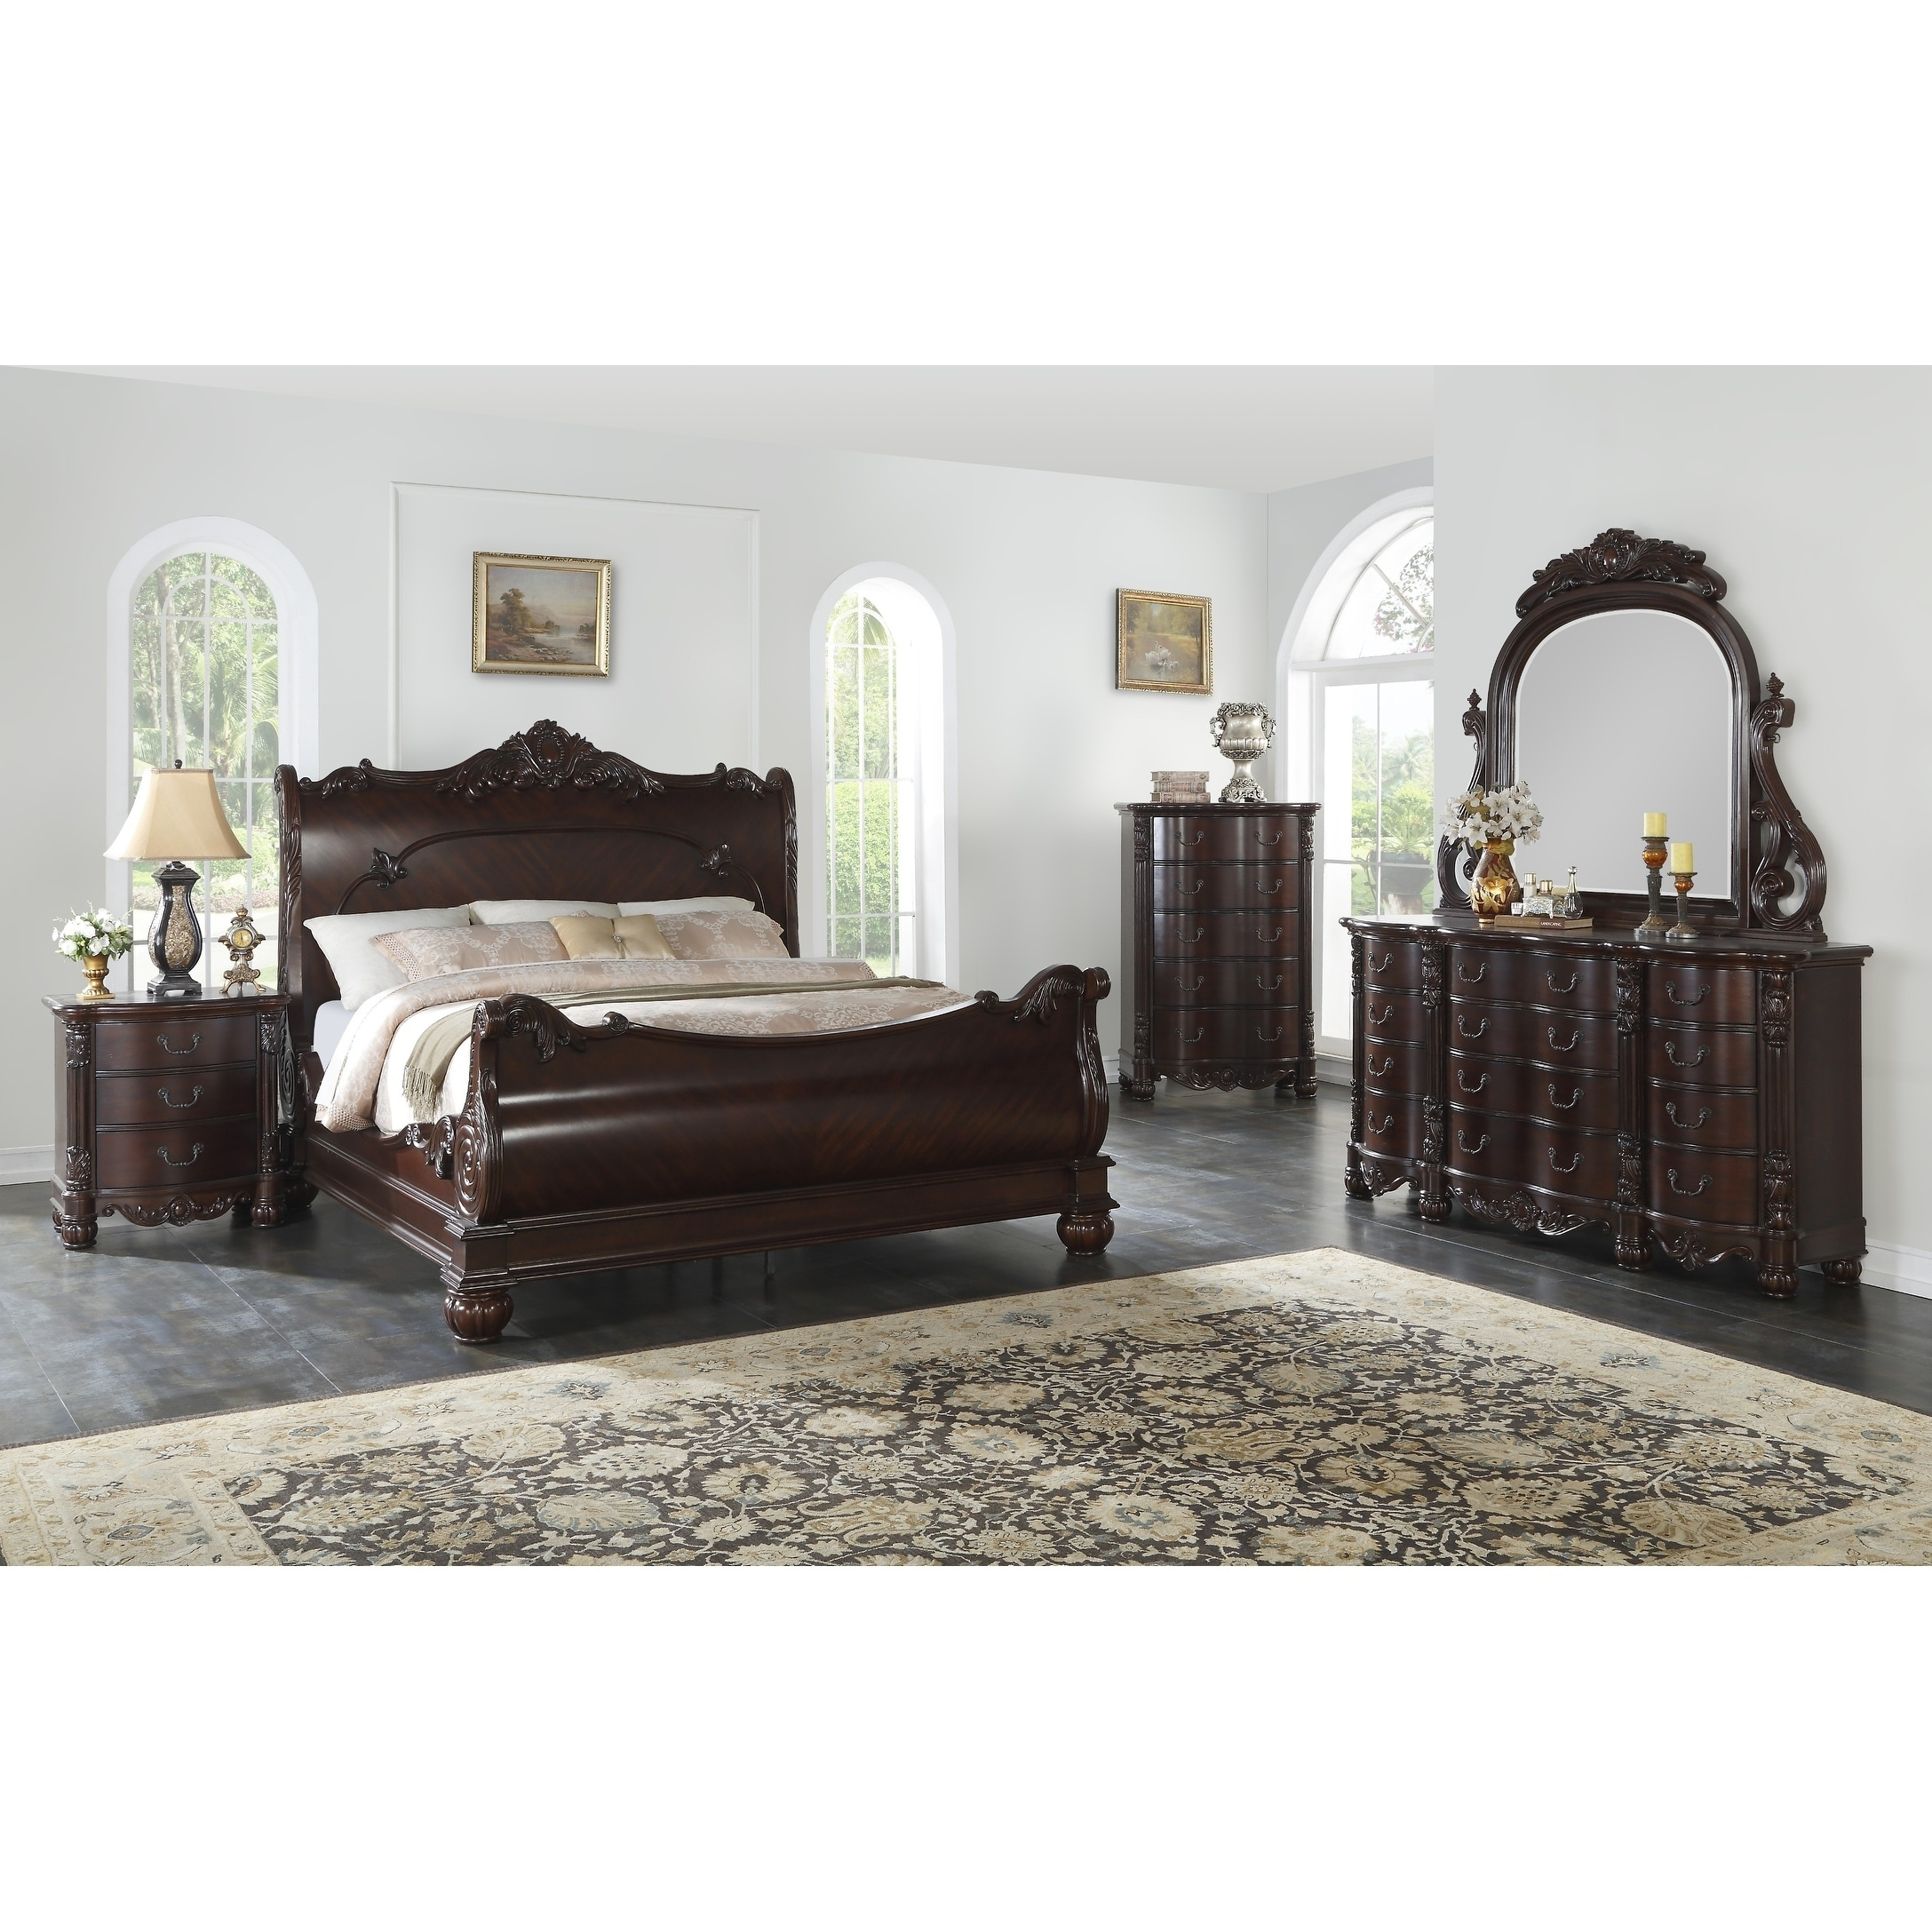 Saillans Cherry Finish Solid Wood Construction Bedroom Set with Bed,  Dresser and Mirror, Nightstand, Chest